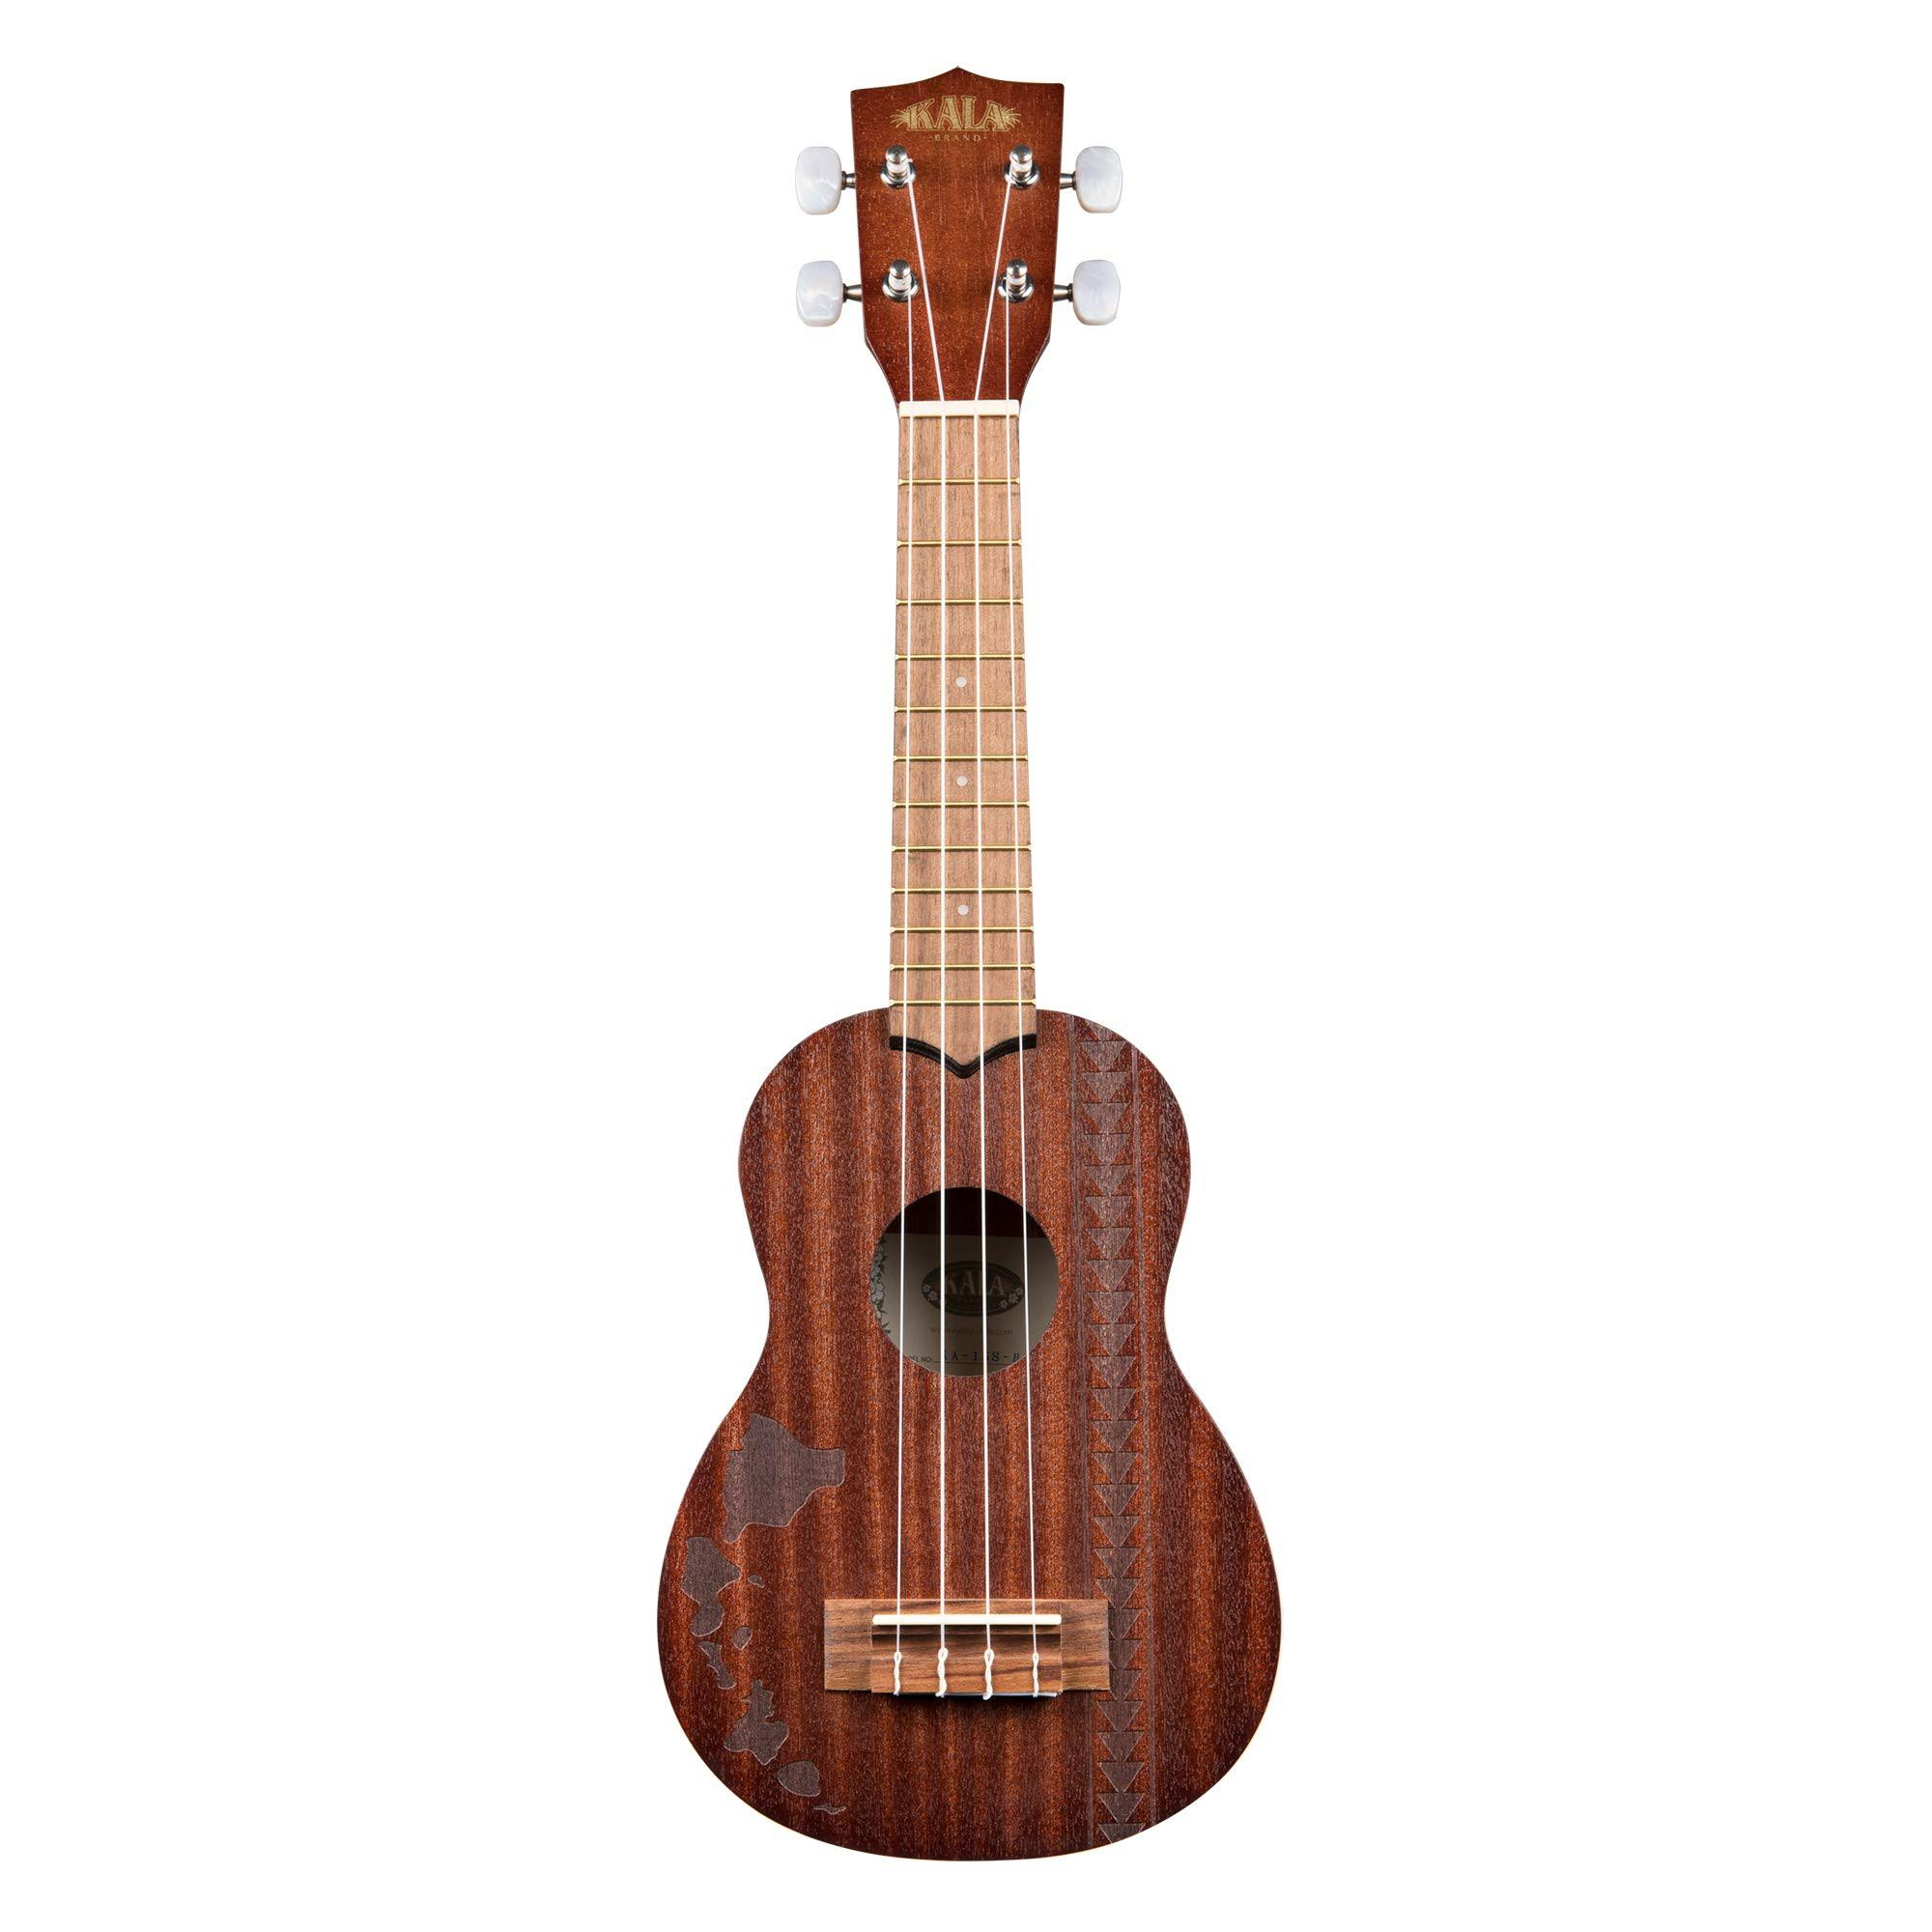 Kala KA-15-S-H2 Soprano Ukulele - Hawaiian Islands